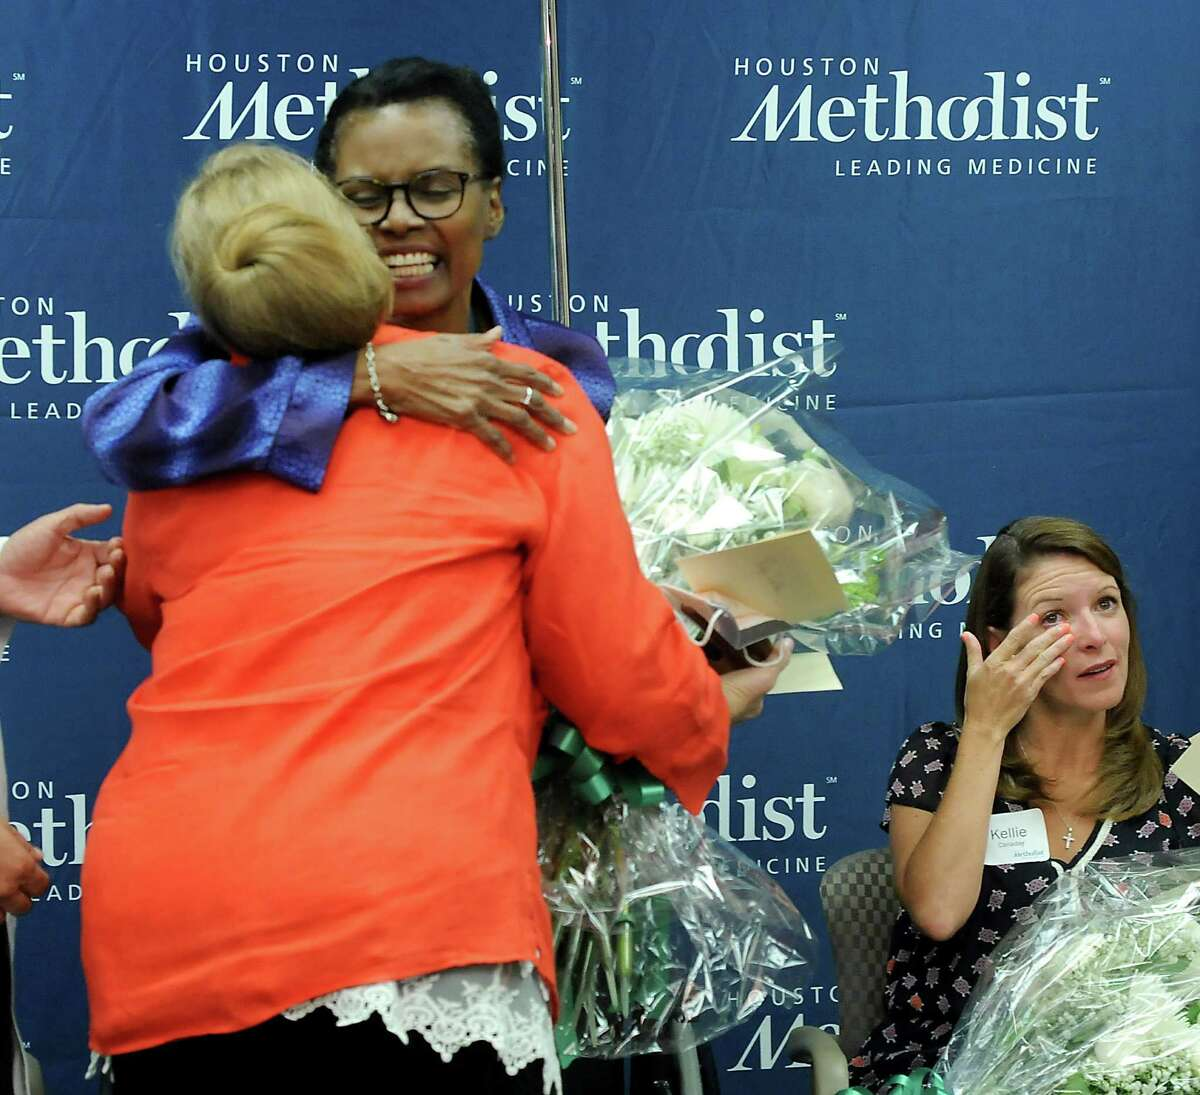 The six-way kidney swap Monday at Houston Methodist Hospital proved to be an emotional moment for donors, including Dana Edson, front left, and Kellie Canaday, right, as well as recipients like Rudyne Walker, center.